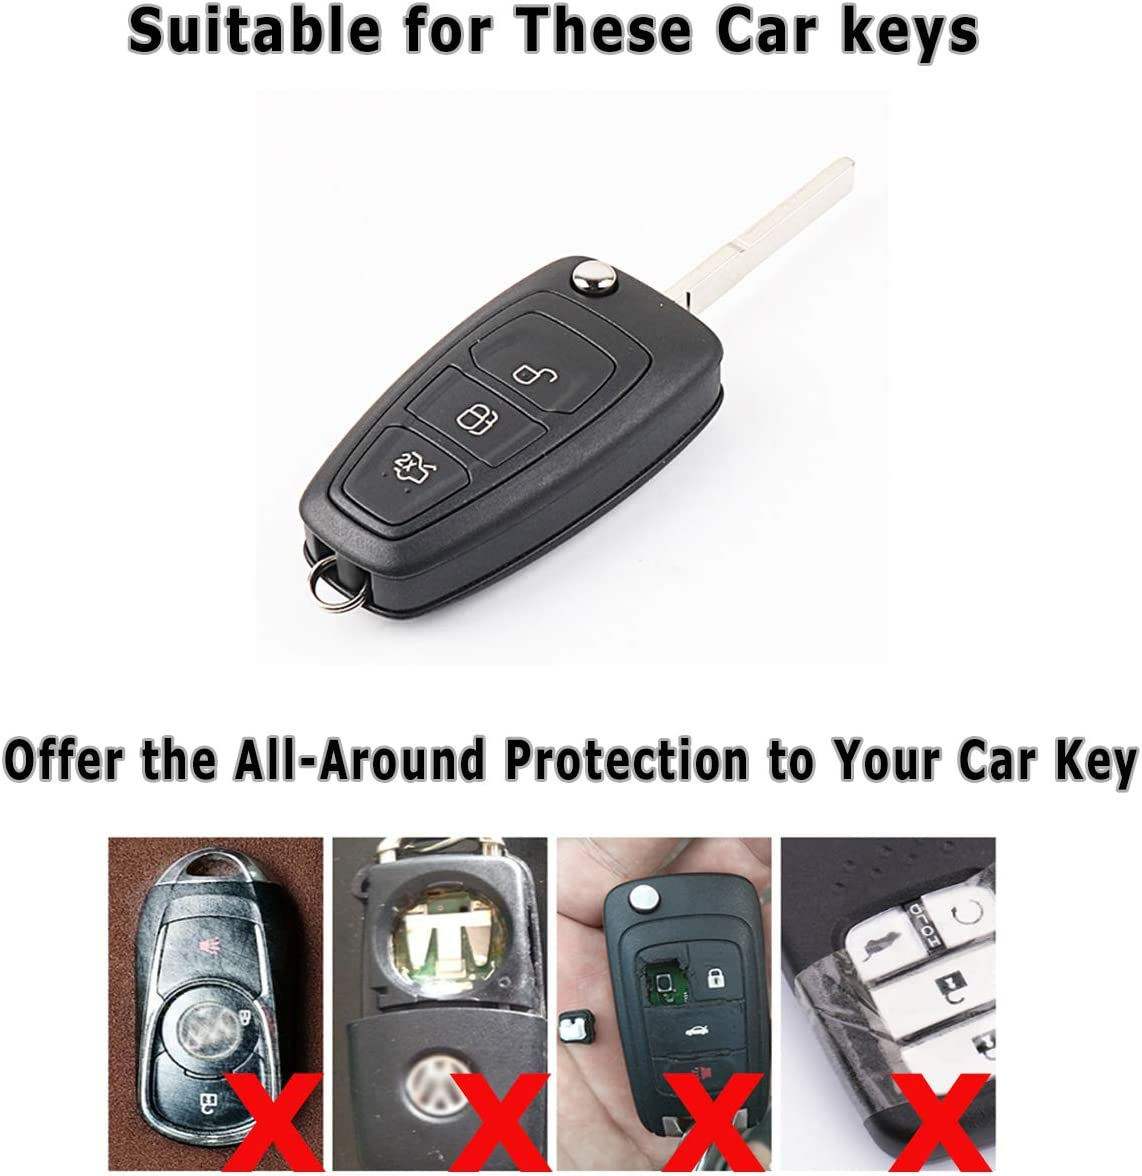 RED Kaser Soft TPU 2 3 Buttons Flip Car Key Fob Case Cover Holder Shell Protector for Ford C-Max S-Max Focus 3 MK2 MK3 Galaxy Mondeo Transit Fiesta Kuga Escape Ecosport Remote Control